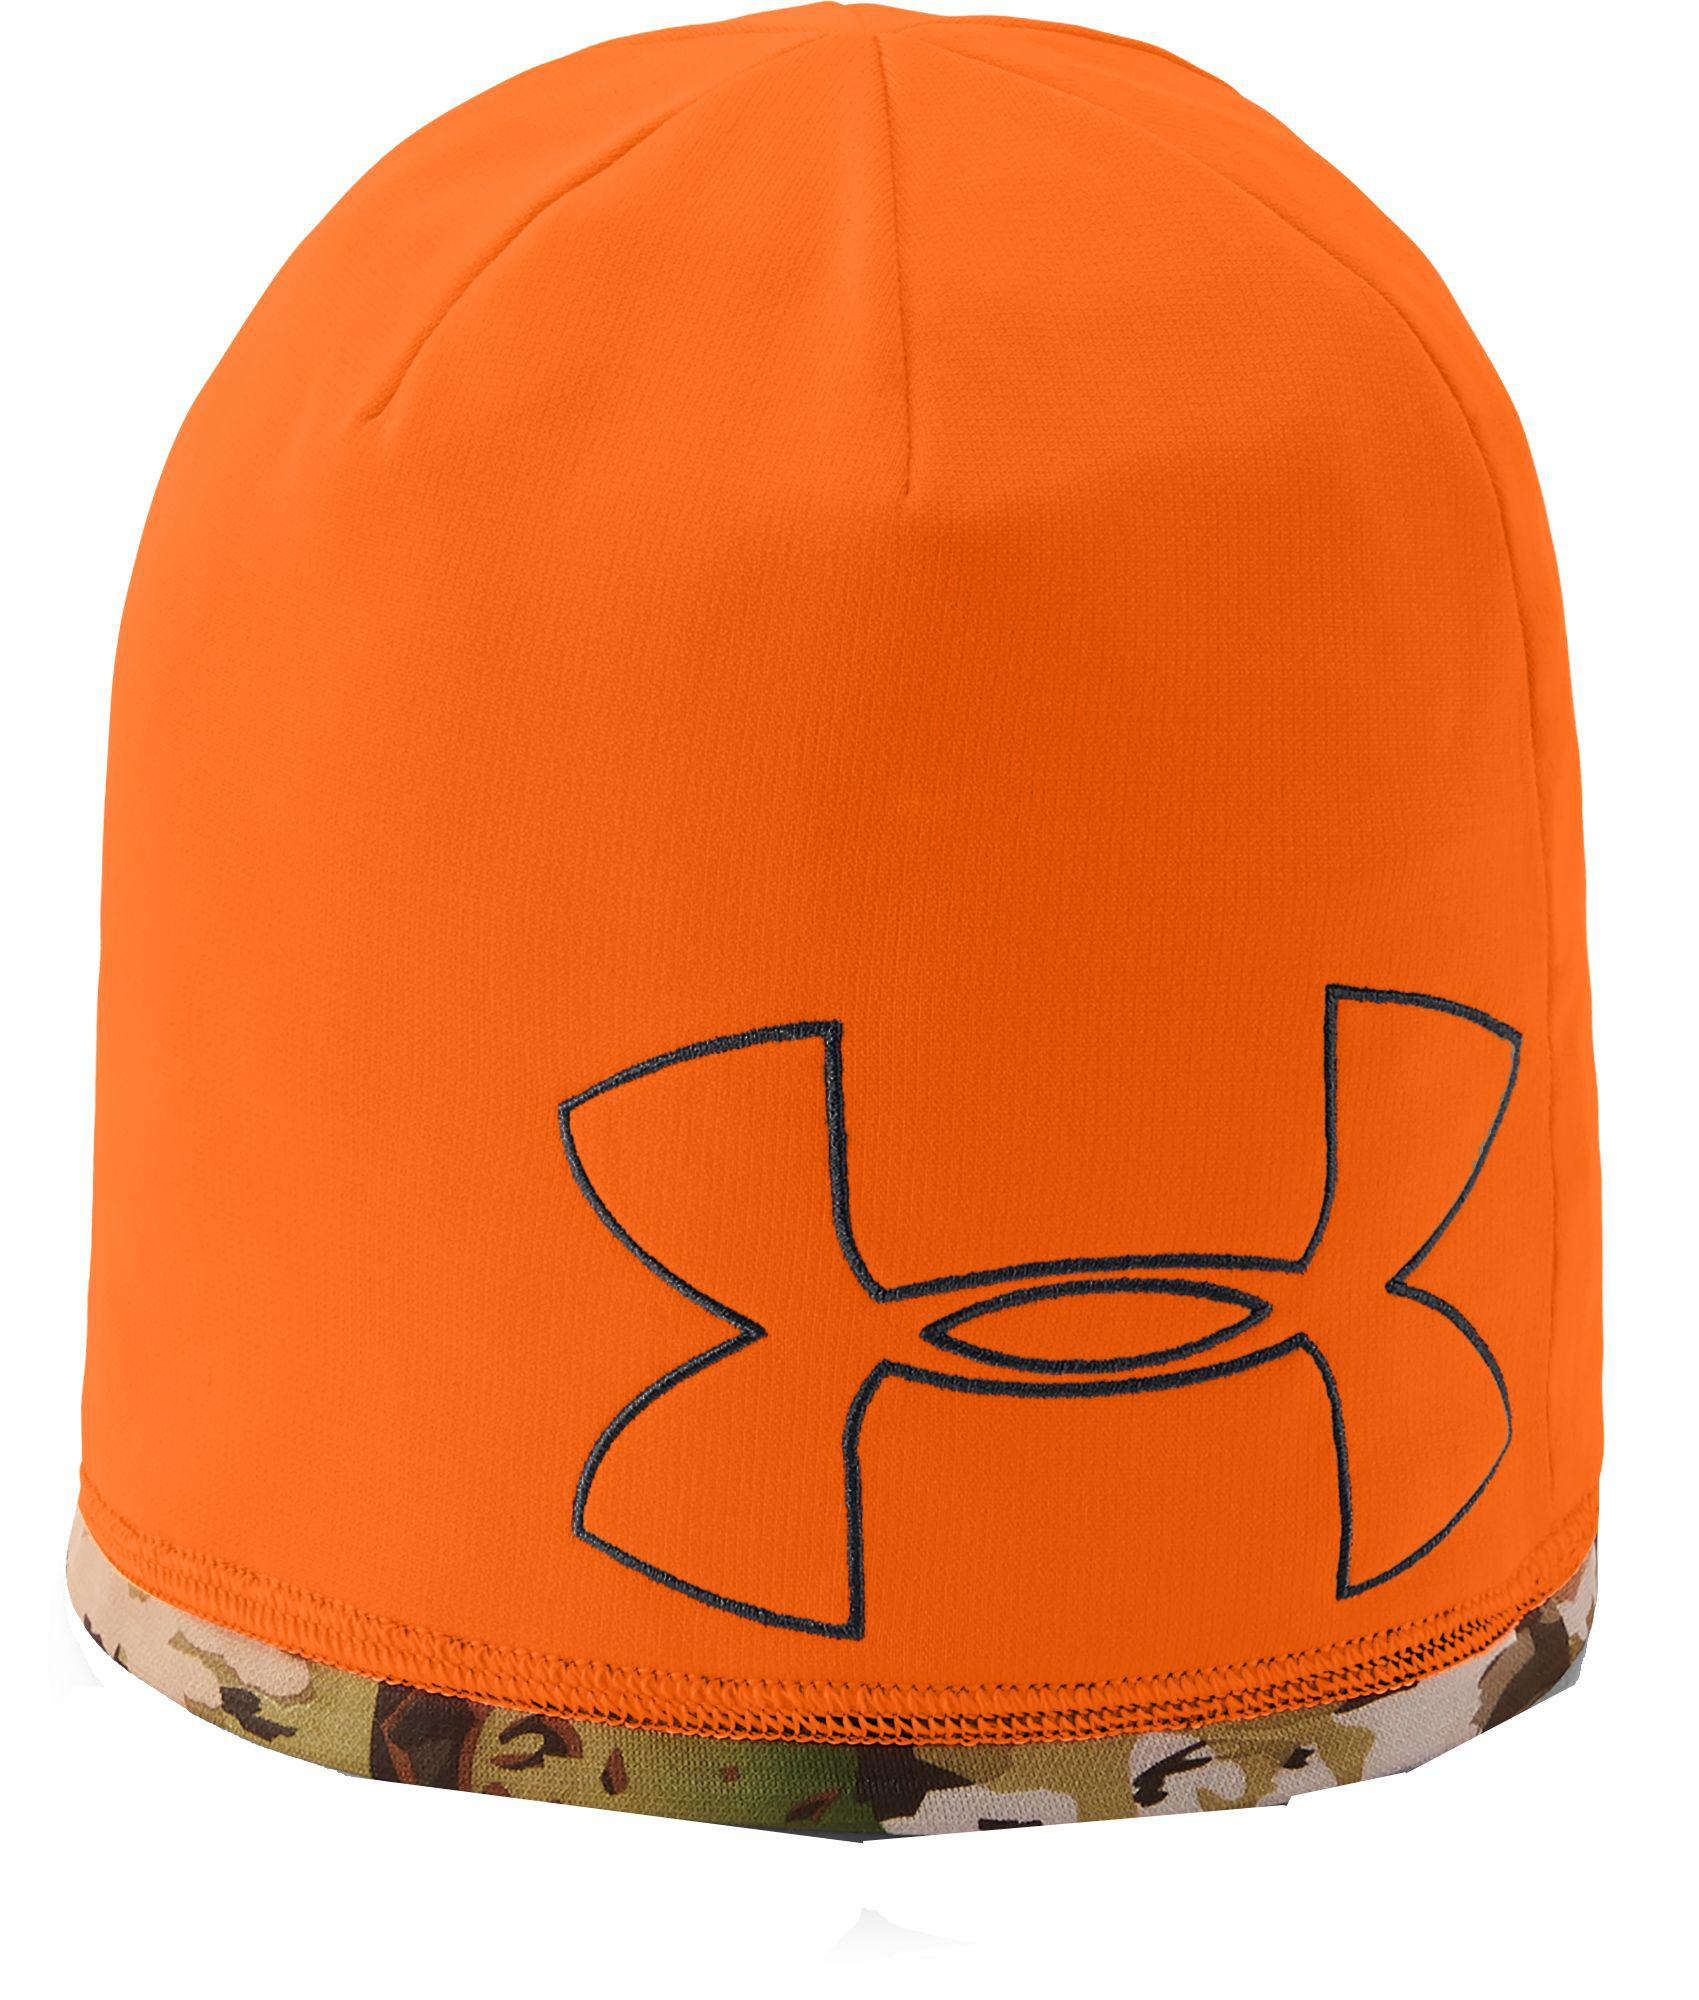 Under Armour - Orange Reversible Fleece 2.0 Hunting Beanie for Men - Lyst.  View fullscreen 85f7058e1a16